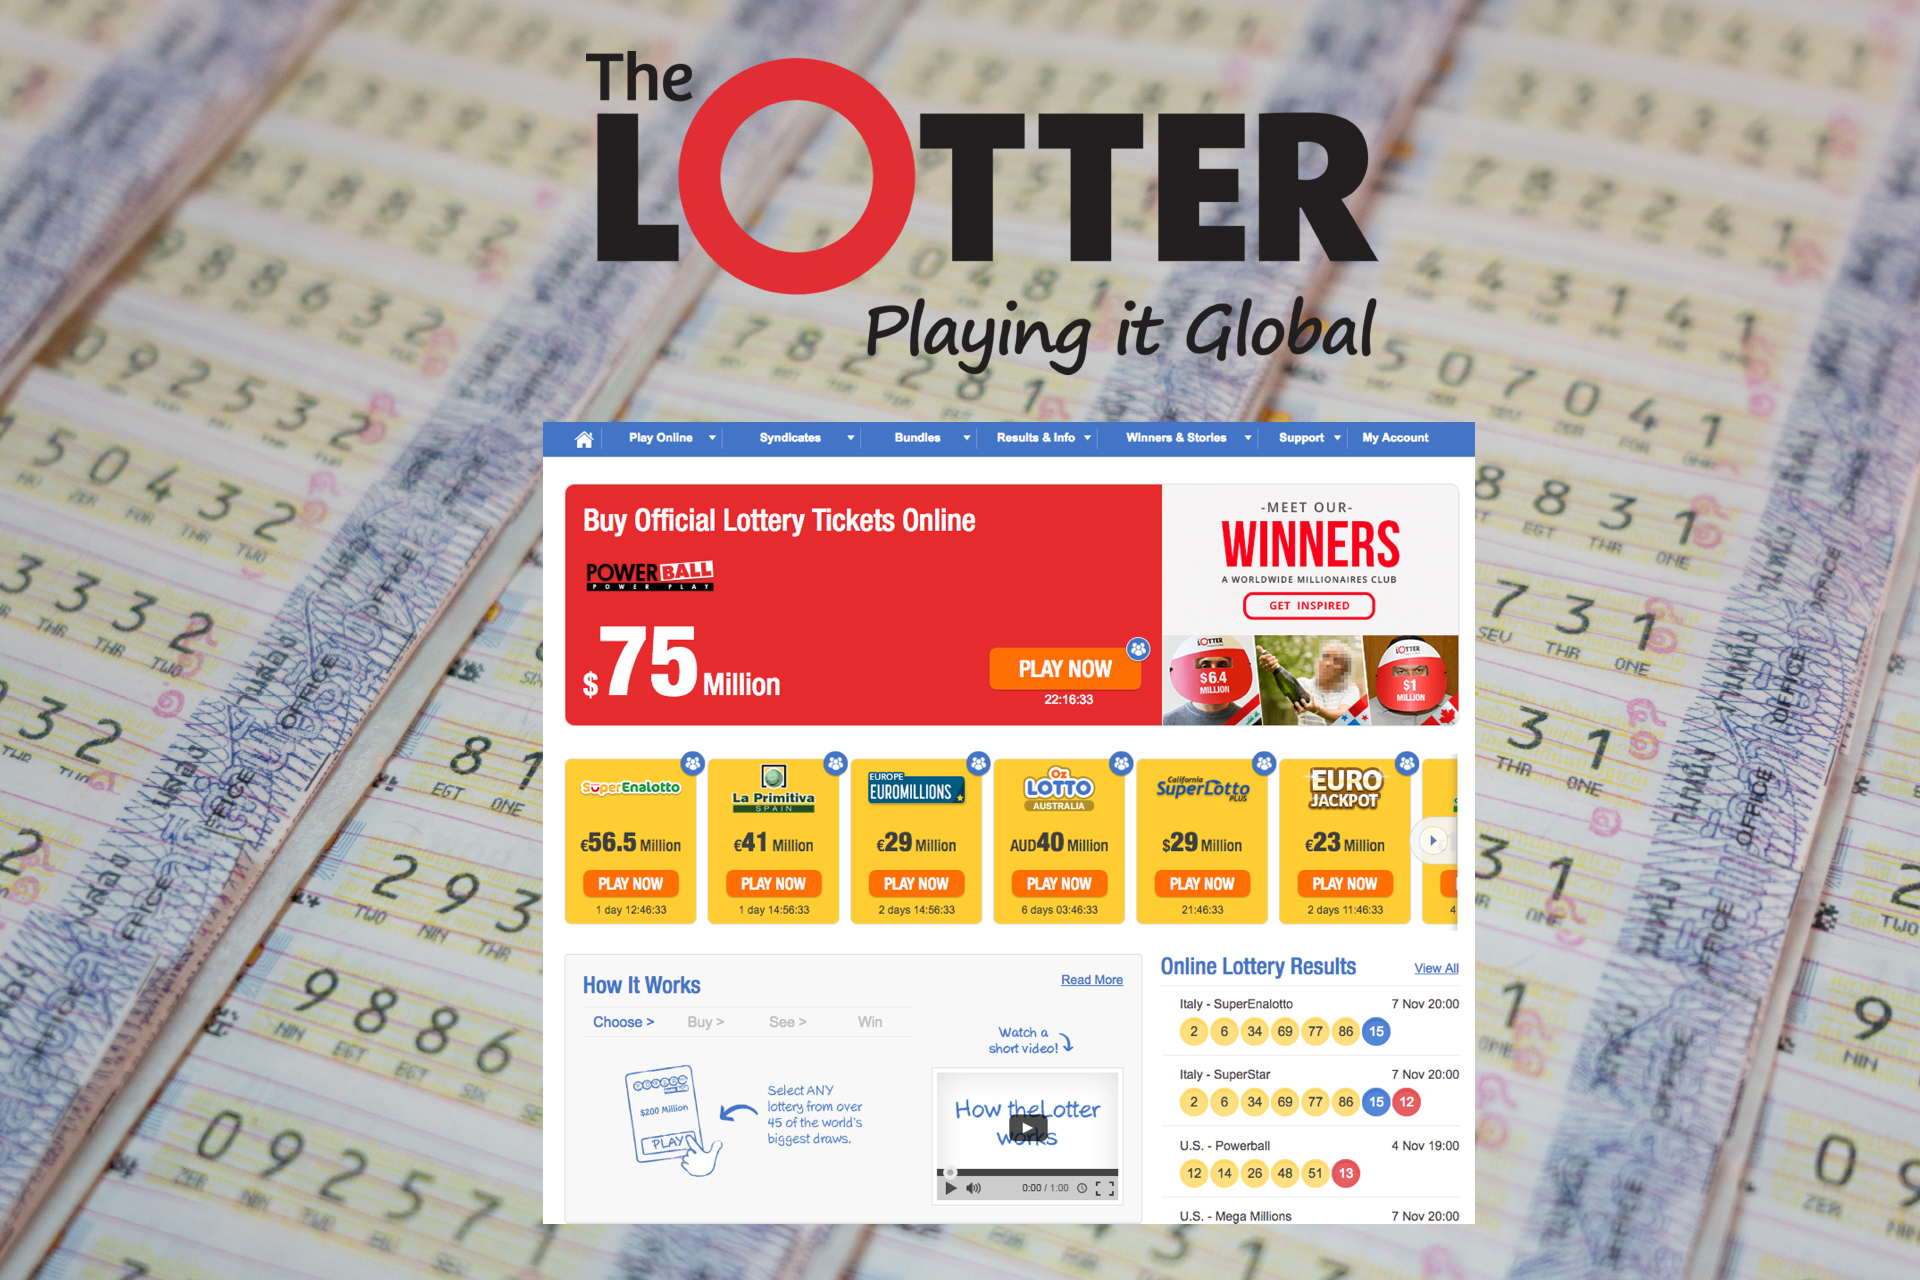 There are over 95 types of online lotteries available on TheLotter.